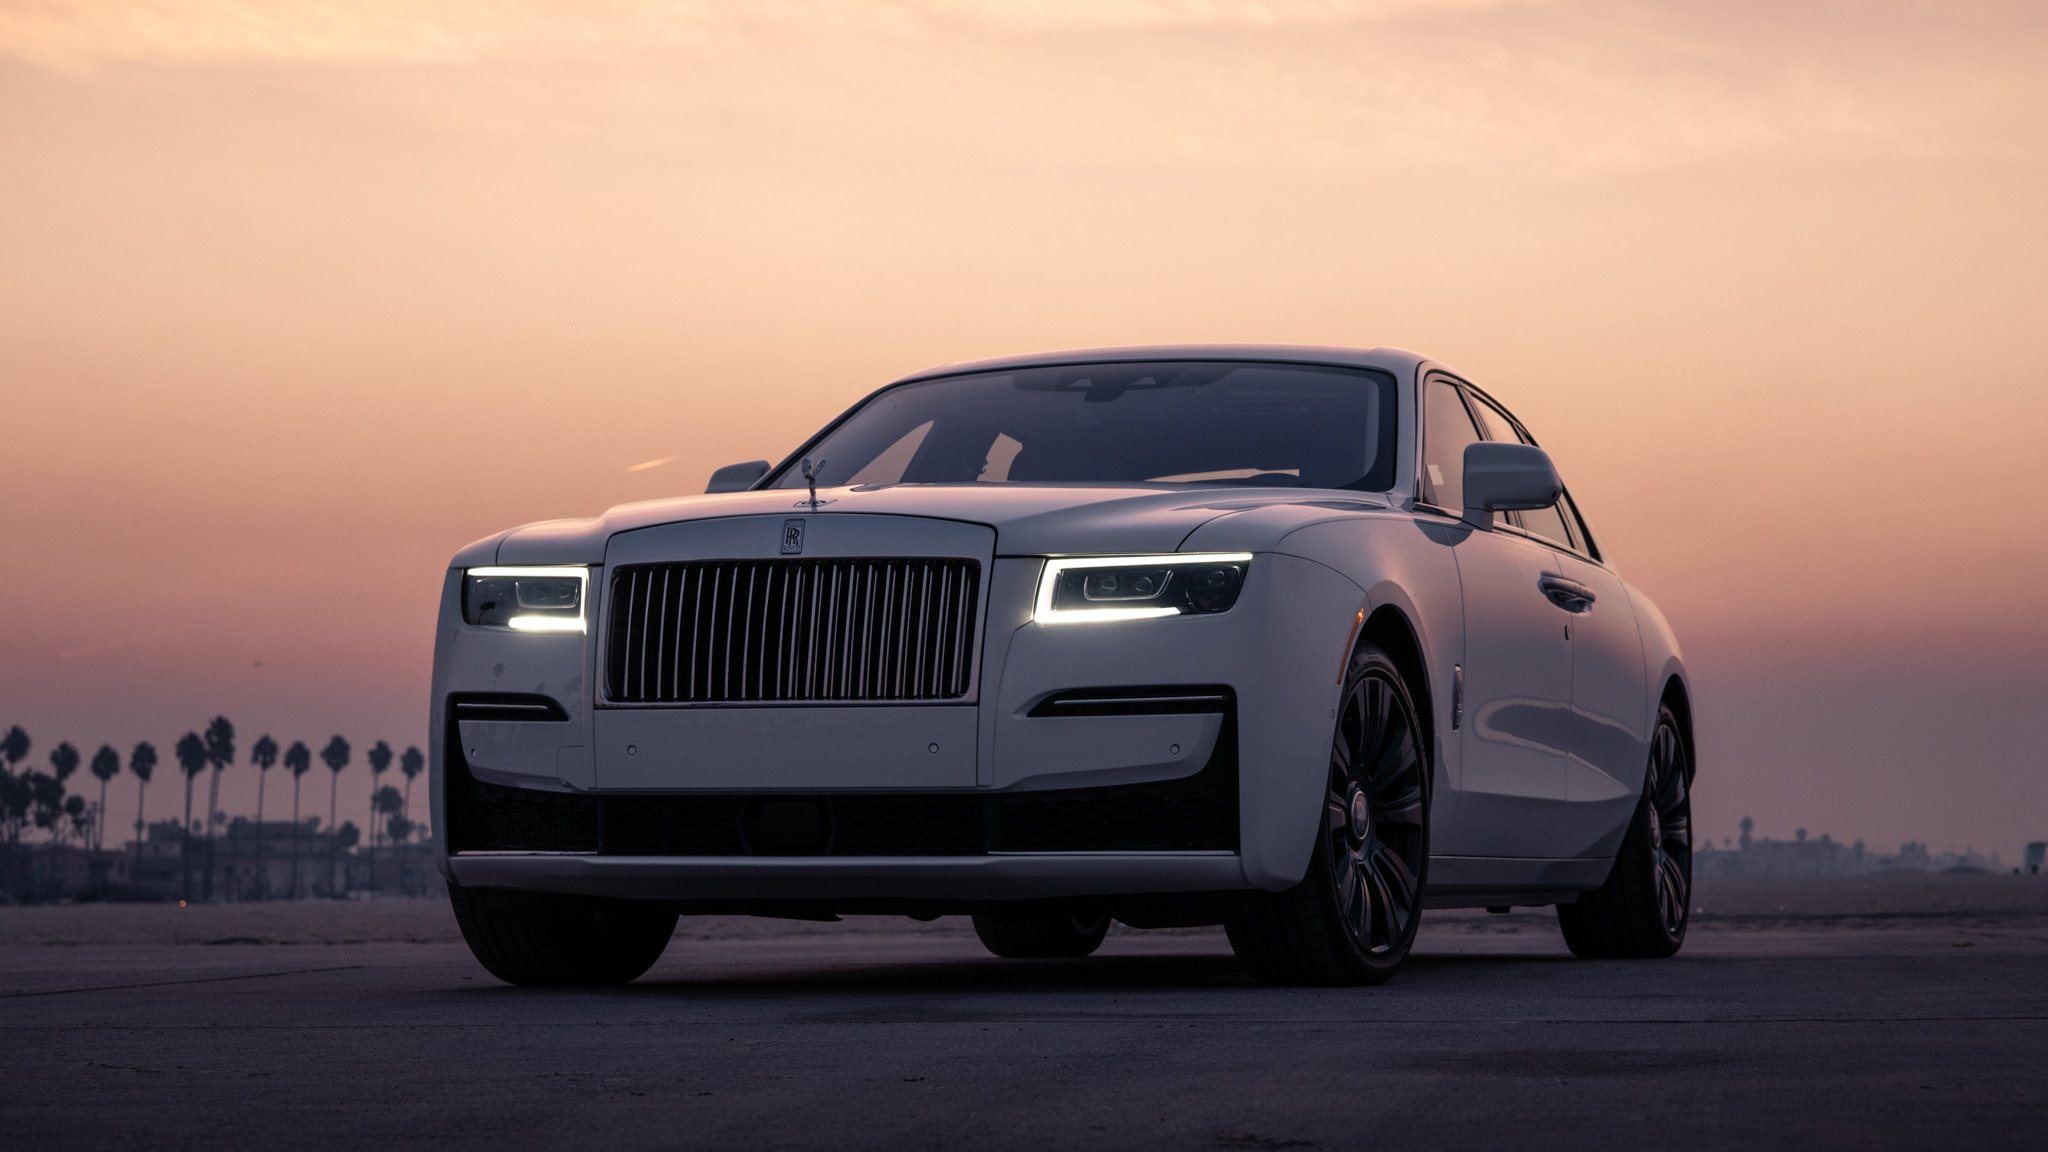 2021 Rolls-Royce Ghost First Drive: Something Different